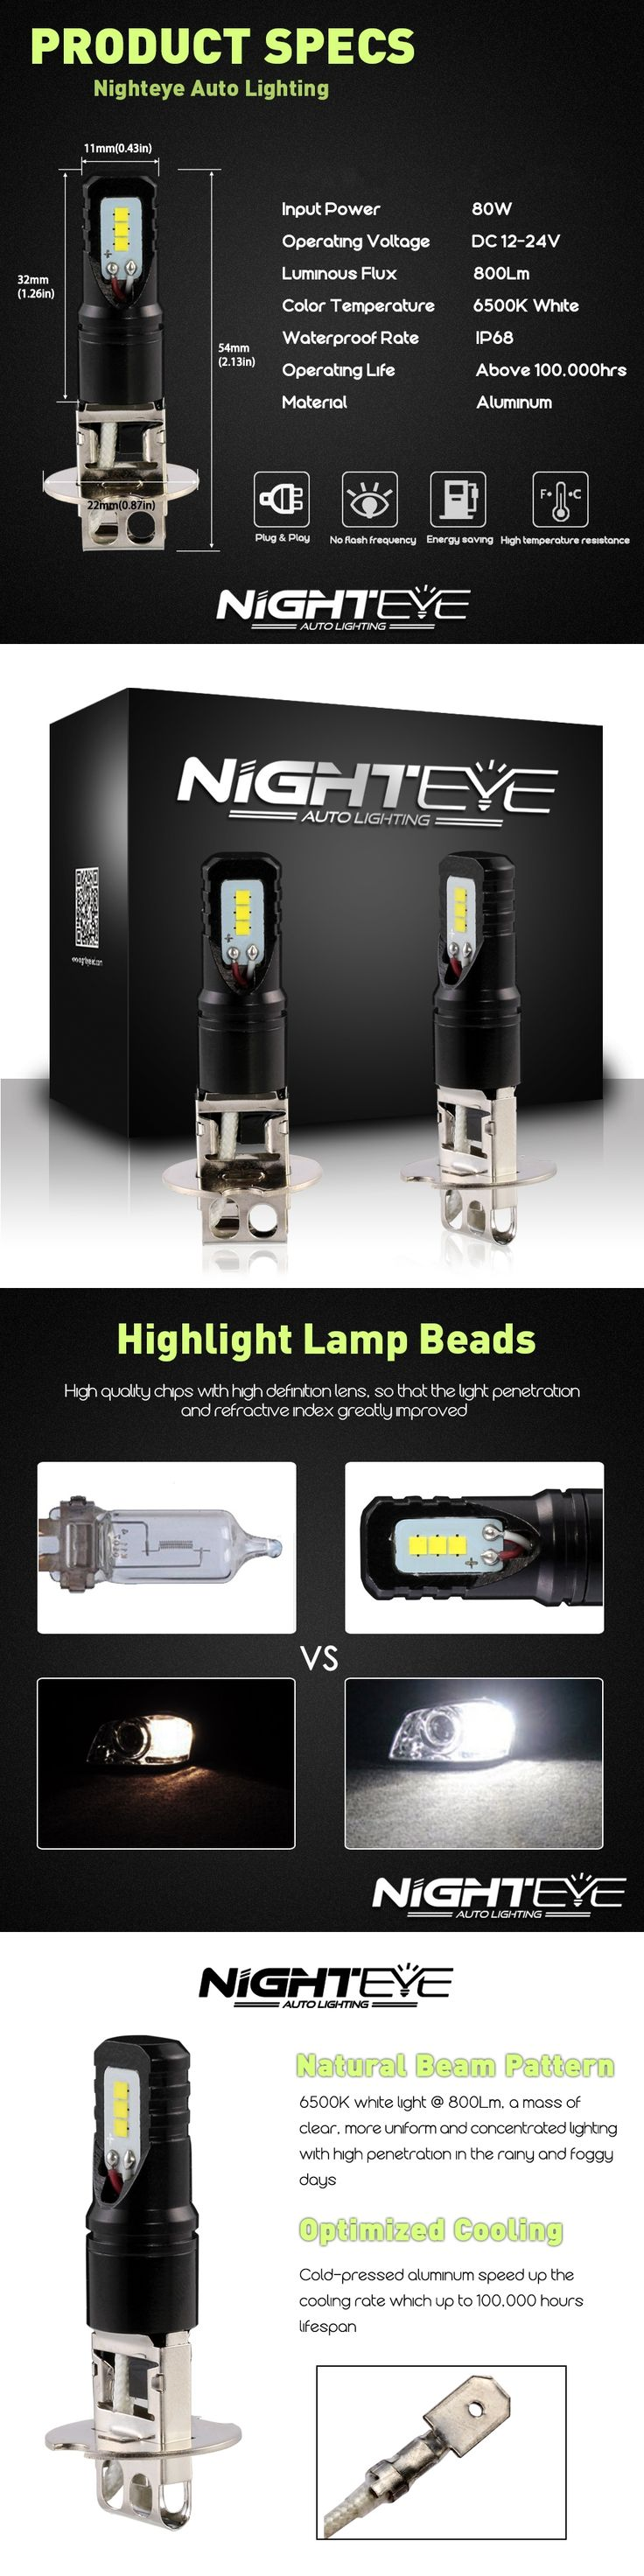 NIGHTEYE H3 LED Car Fog Light Bulb 1600LM Car LED Fog Lamp Bulb Auto Headlight Fog Lights Driving Bulb Lamp For 6500K Lighting